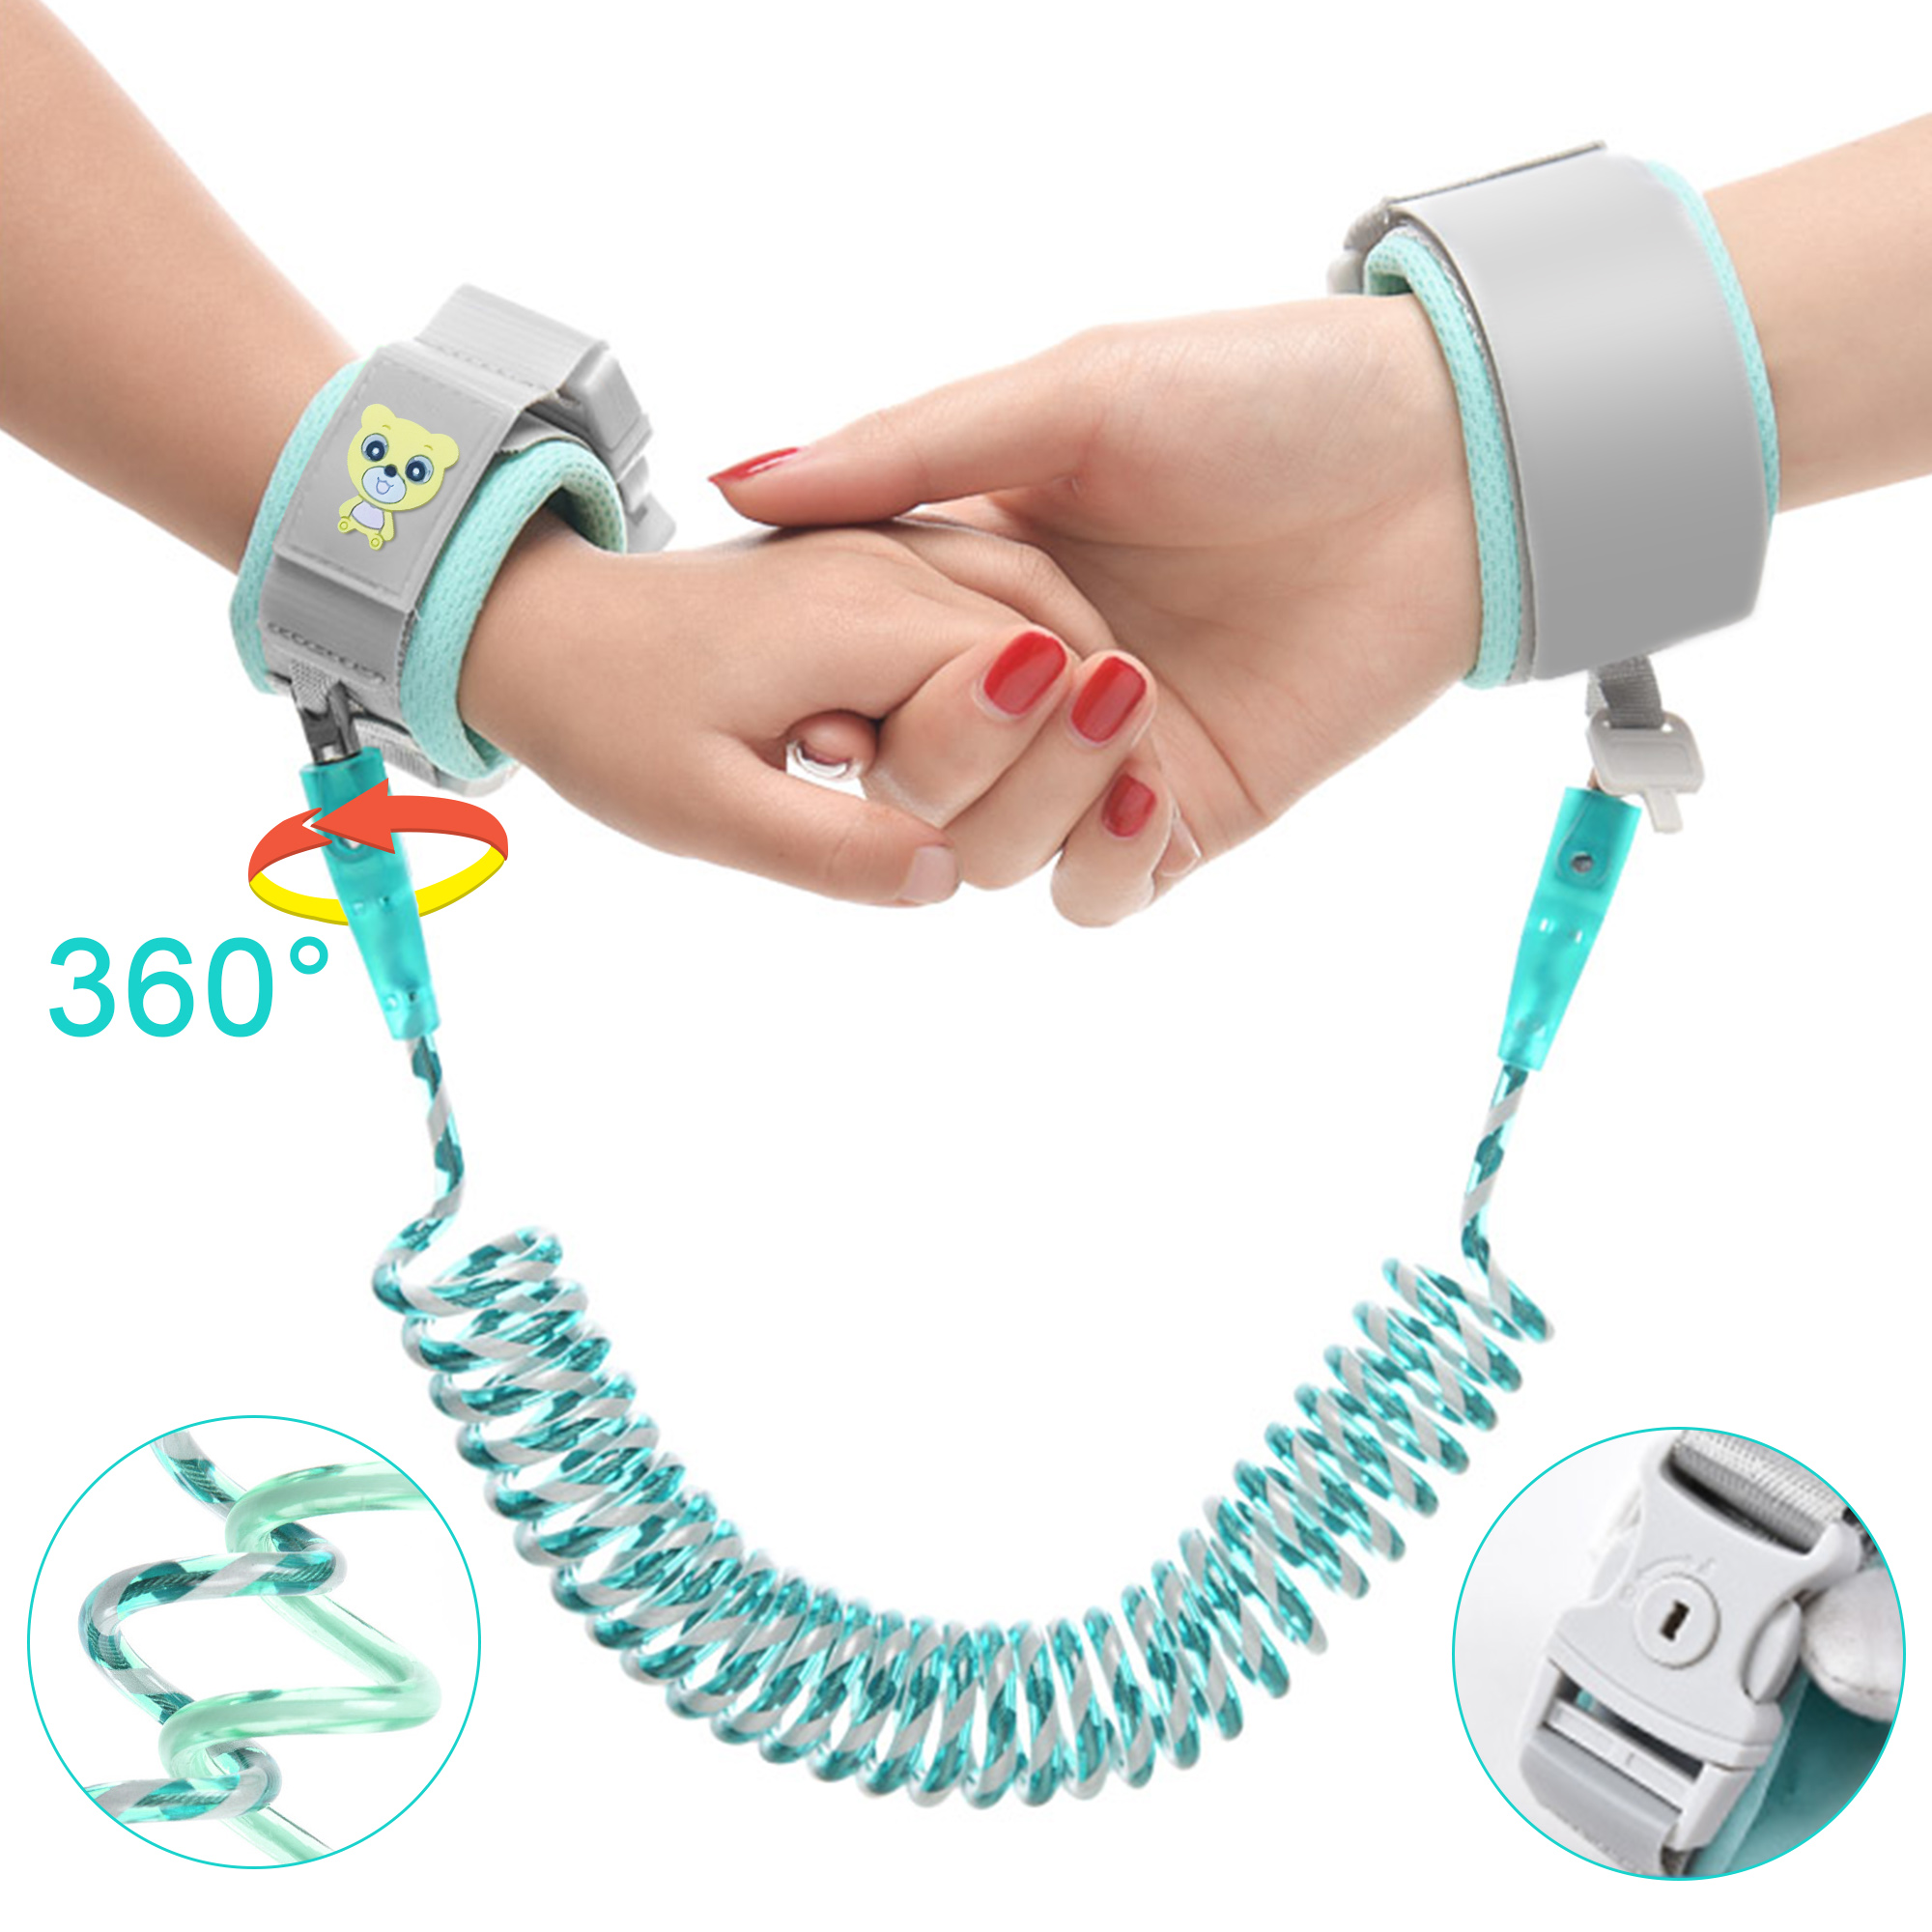 Reflective Anti Lost Wrist Link, Safety Wristband Link Kids Harness Leash Children's Anti-Lost Traction Rope with Key Lock